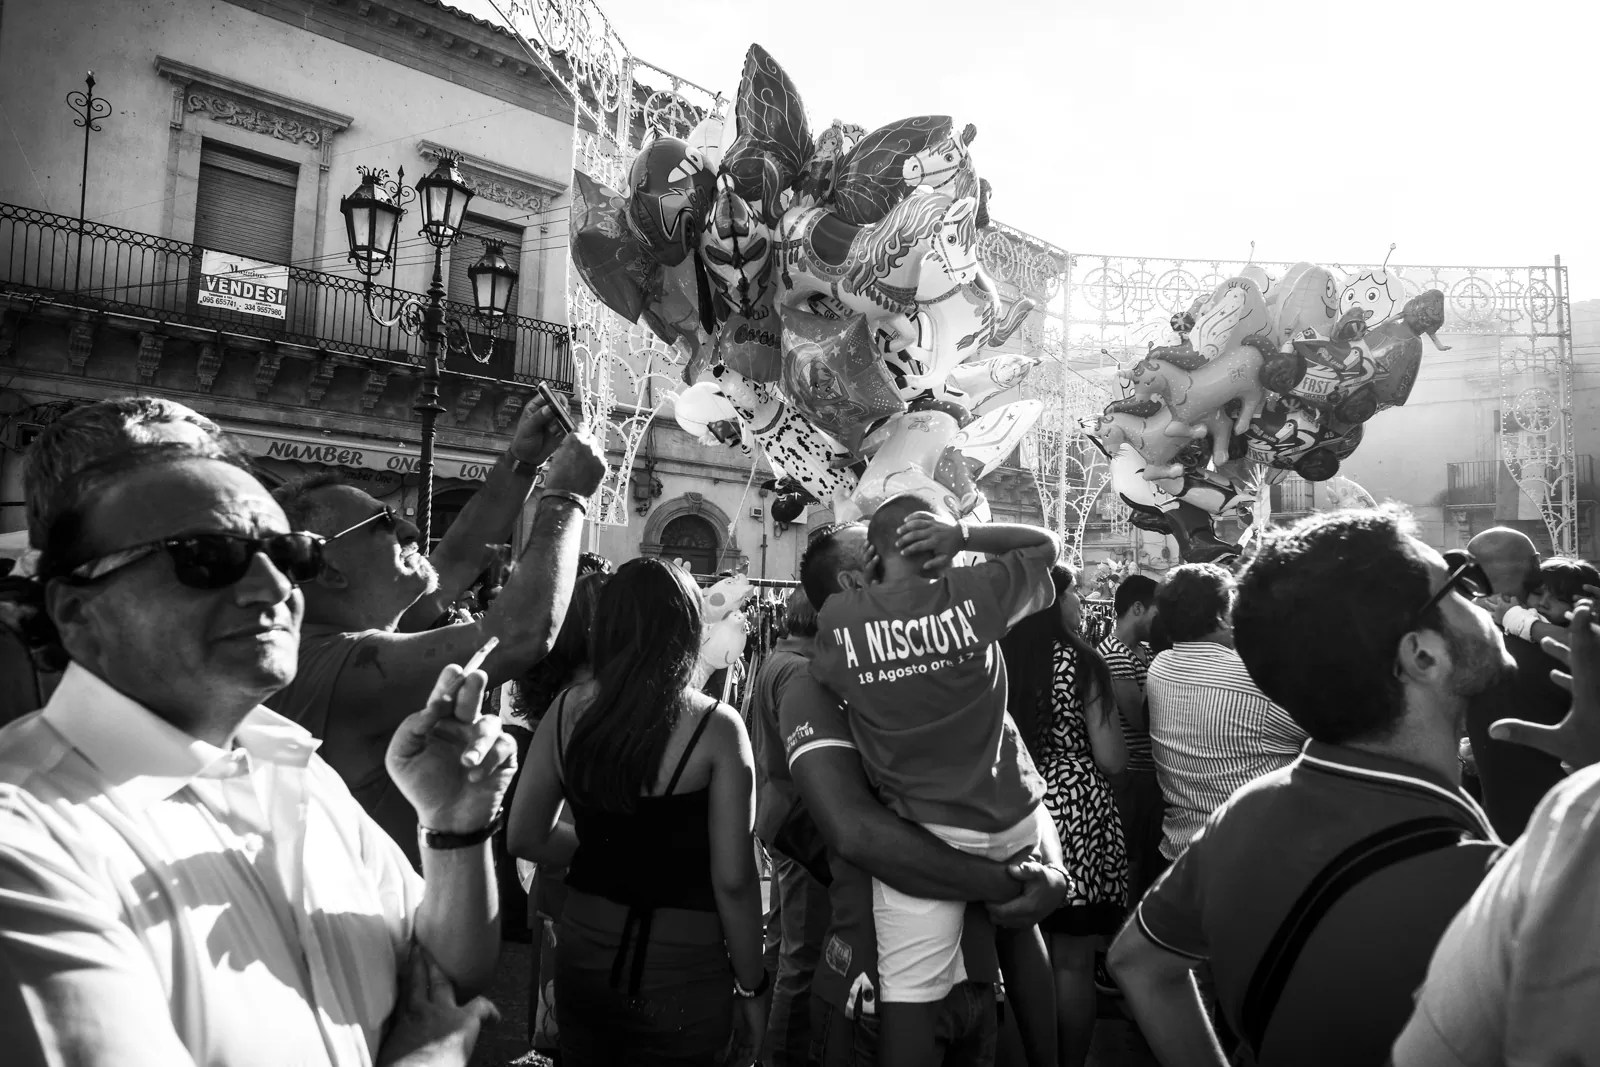 DSCF2710 - La fuori c'è gente - Militello val Ct - Sicily 2014 [street photography] - fotostreet.it